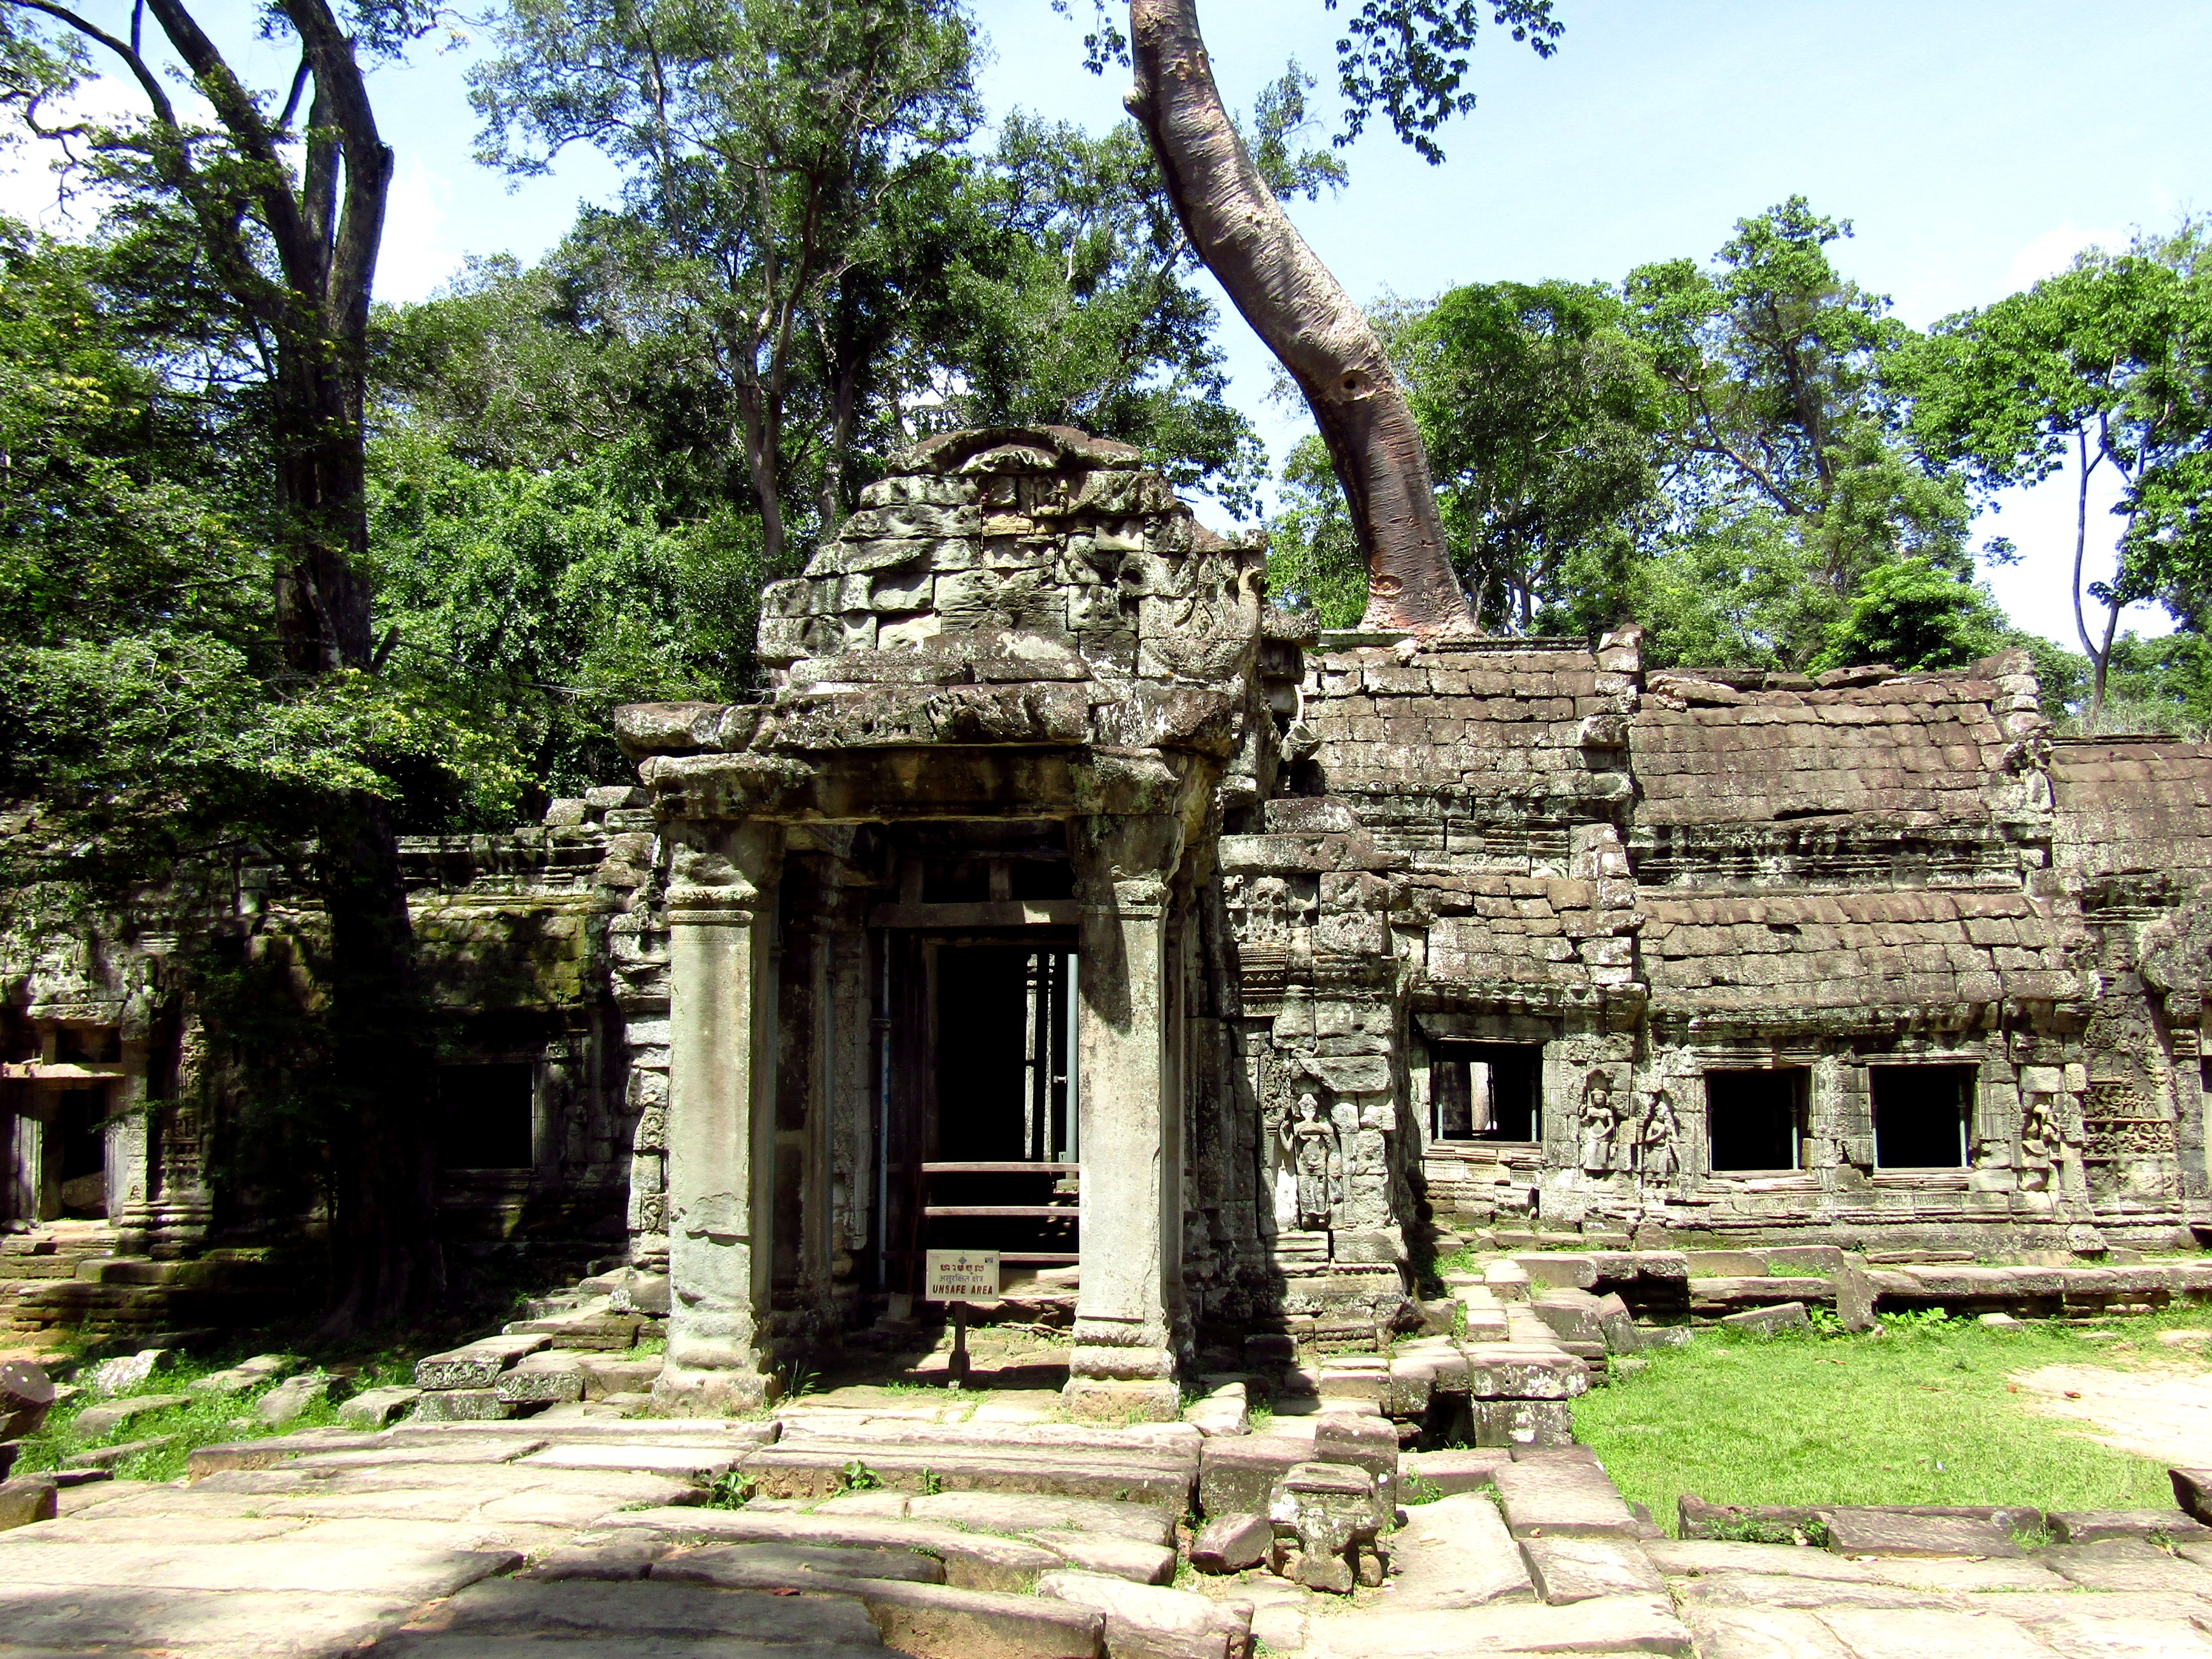 Another temple